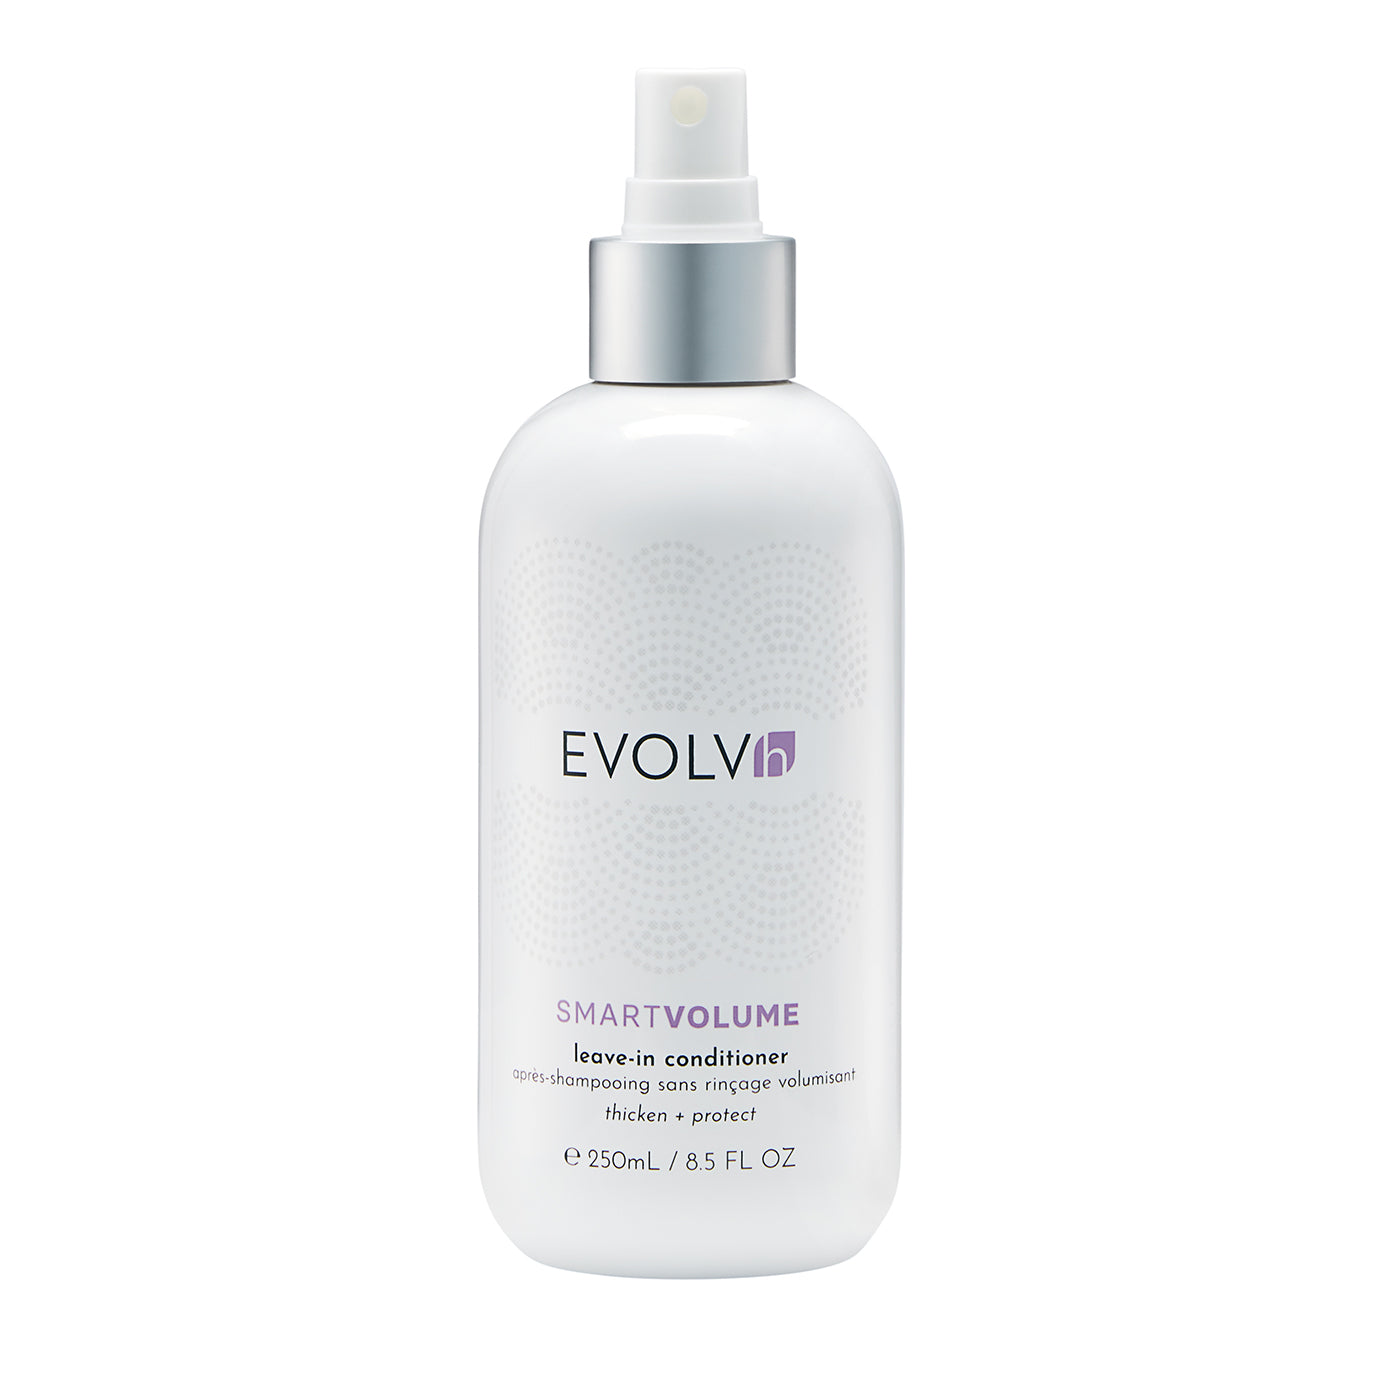 EVOLVh SmartVolume Volumizing Leave-In Conditioner